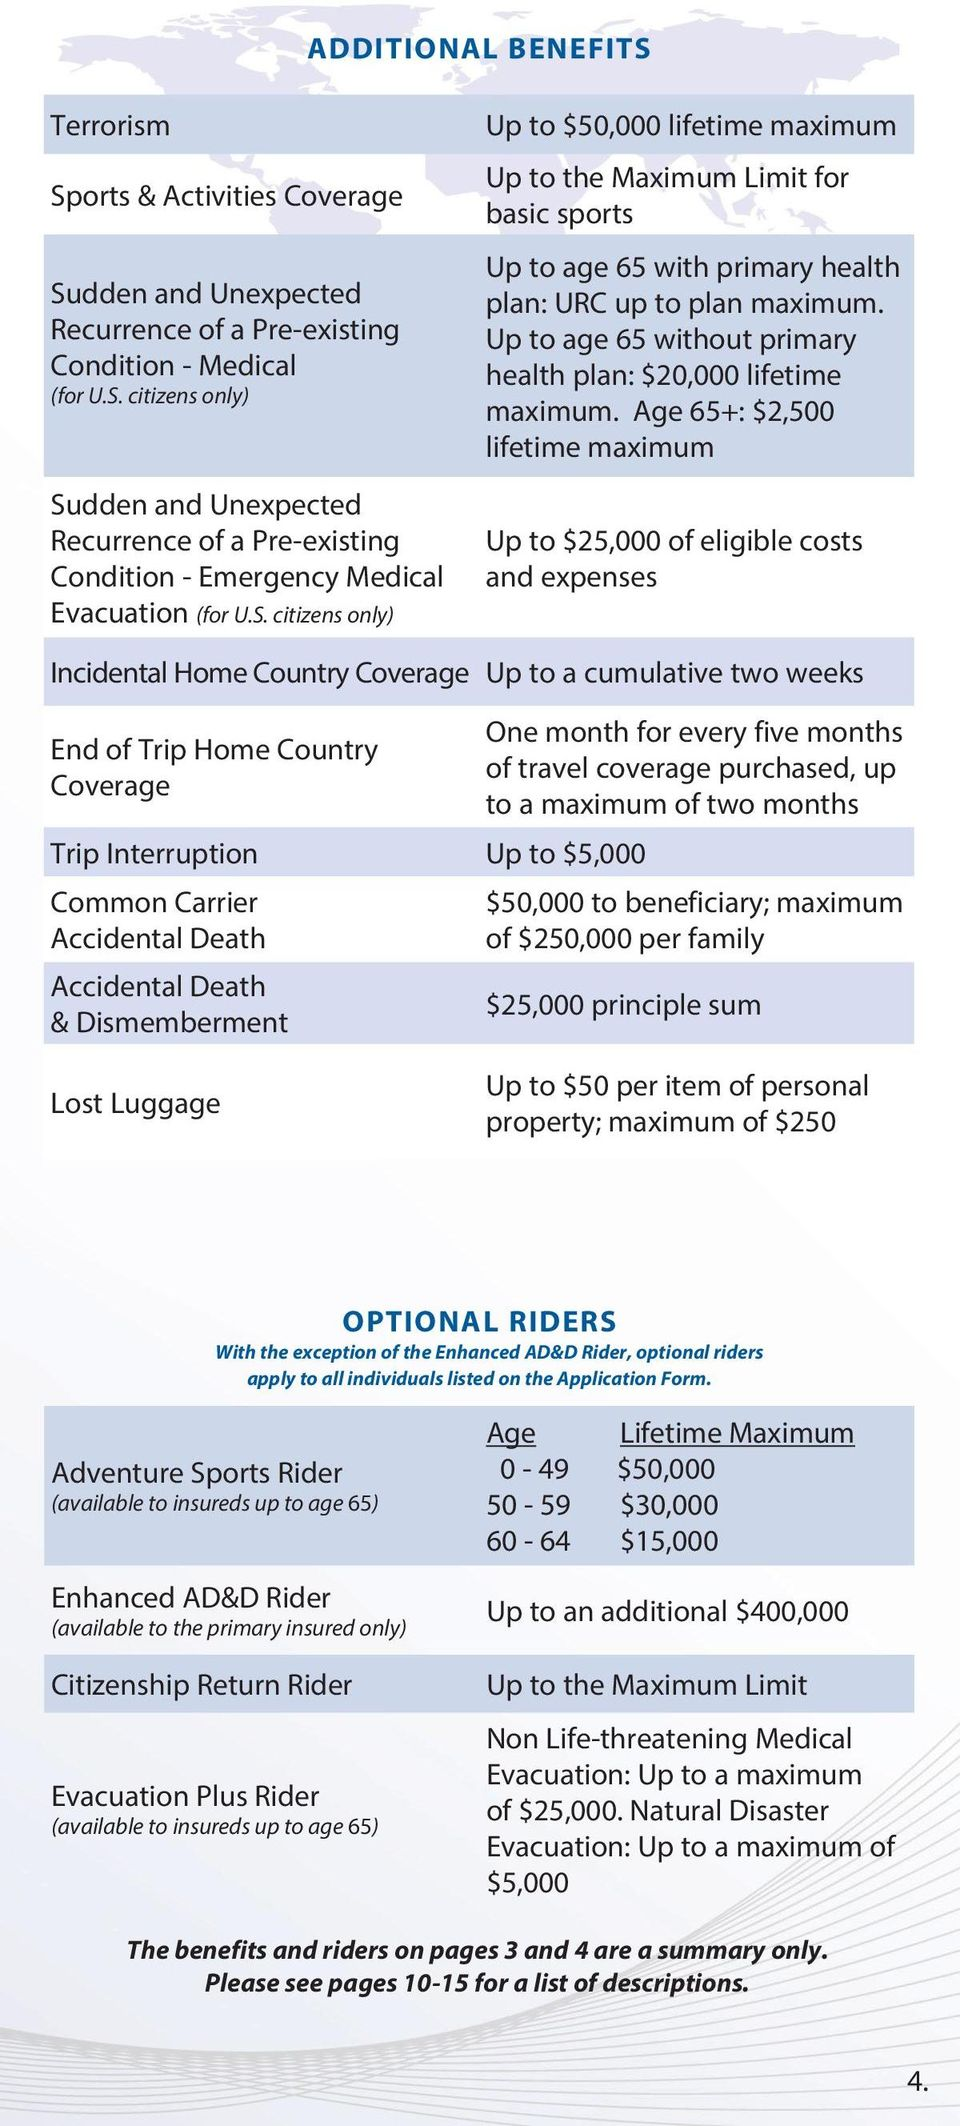 Up to age 65 without primary health plan: $20,000 lifetime maximum.